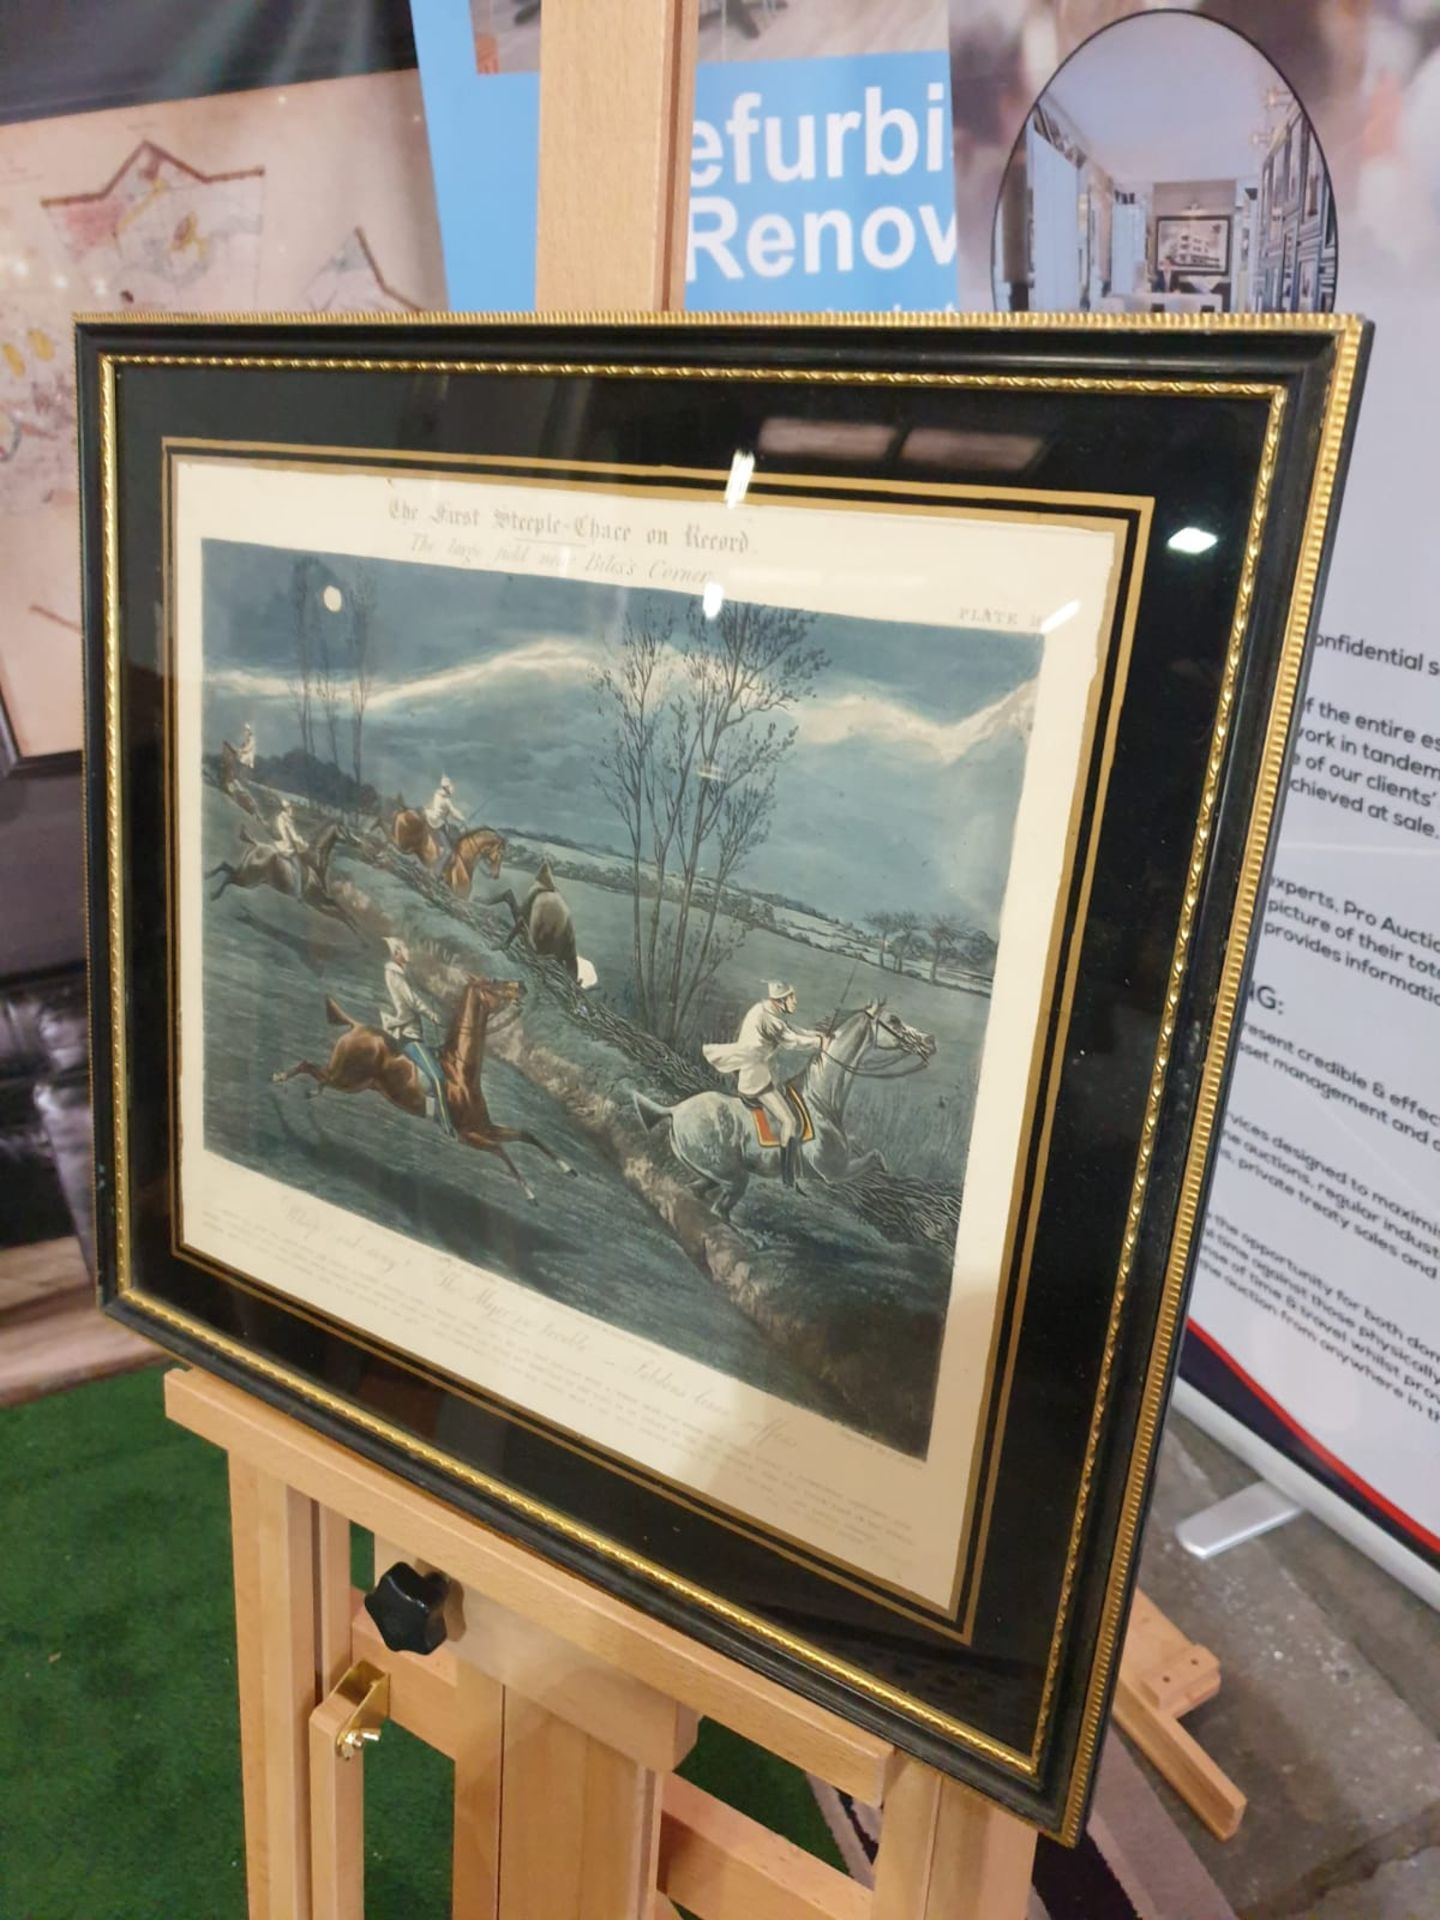 Framed vintage print The First Steeplechase on Record - The large field near Biles's corner (after - Image 2 of 5